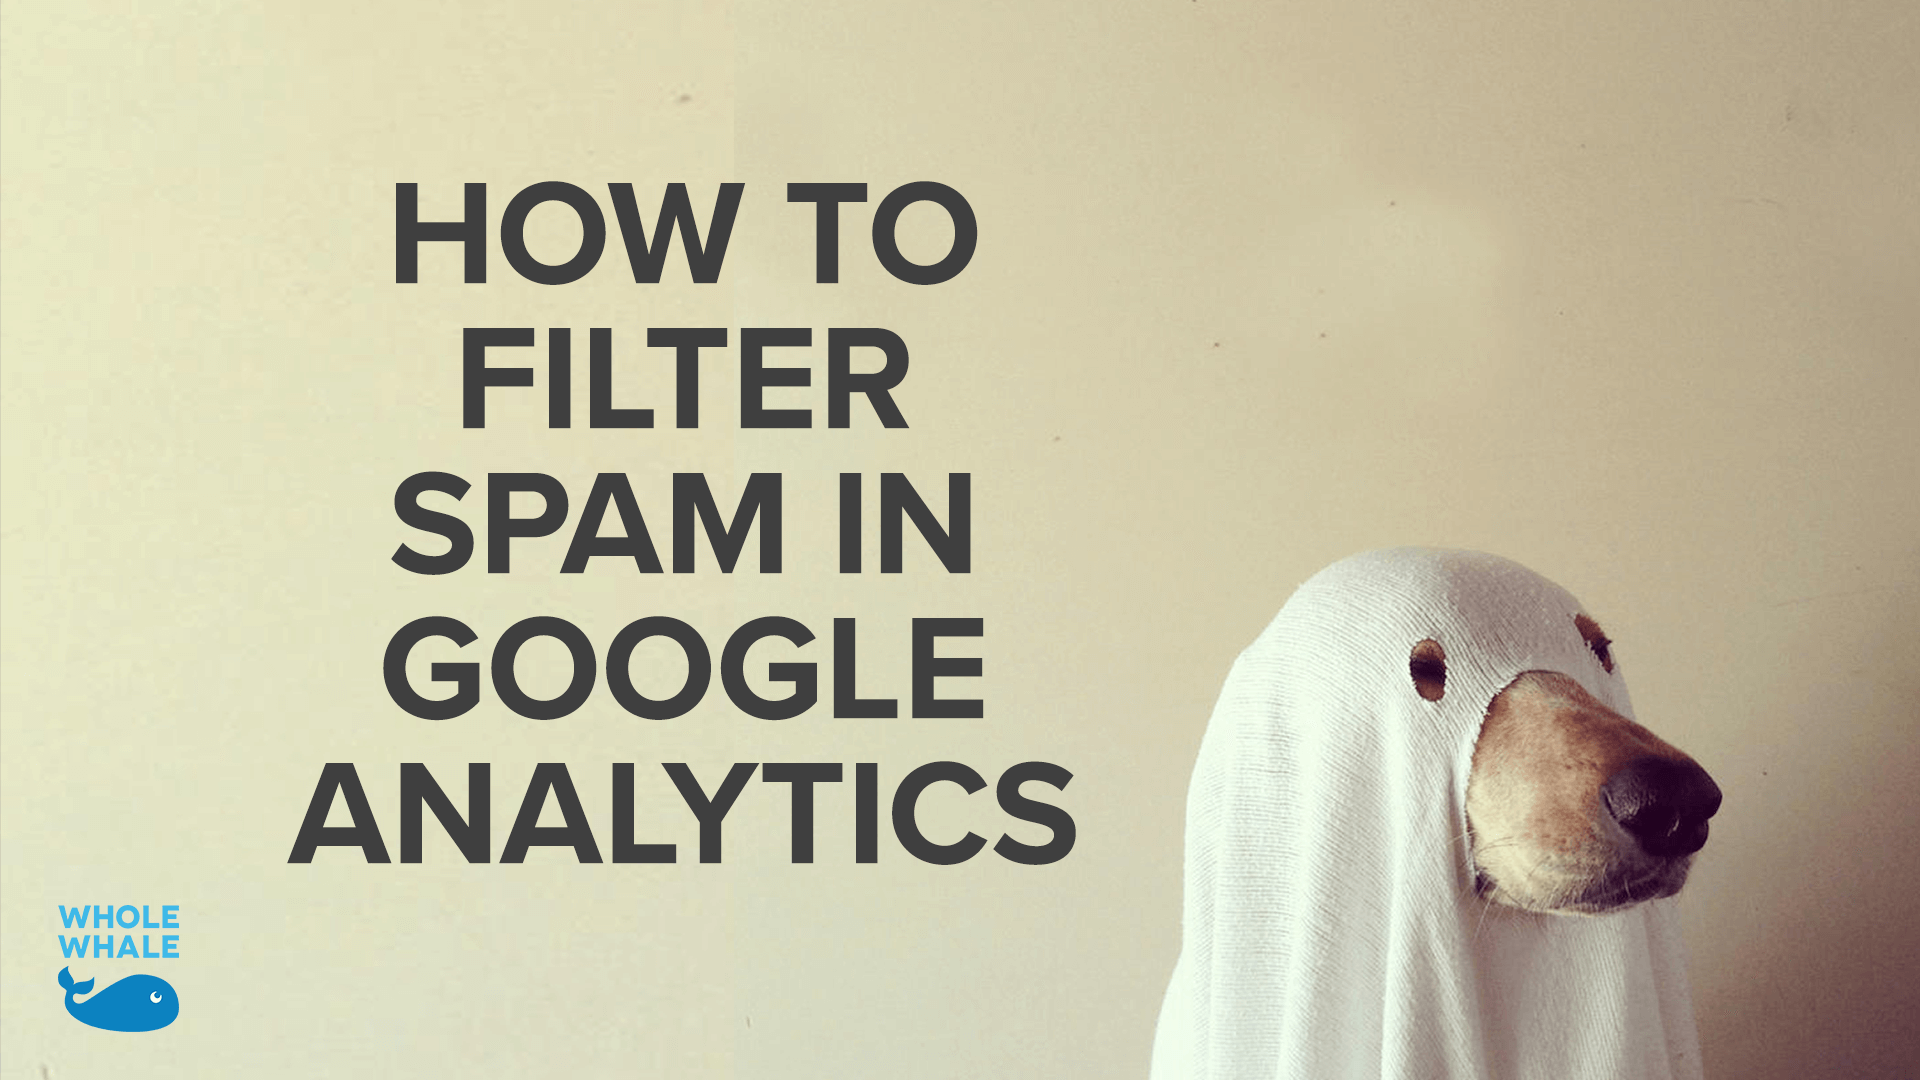 Simple Guide to Filtering Spam in Google Analytics